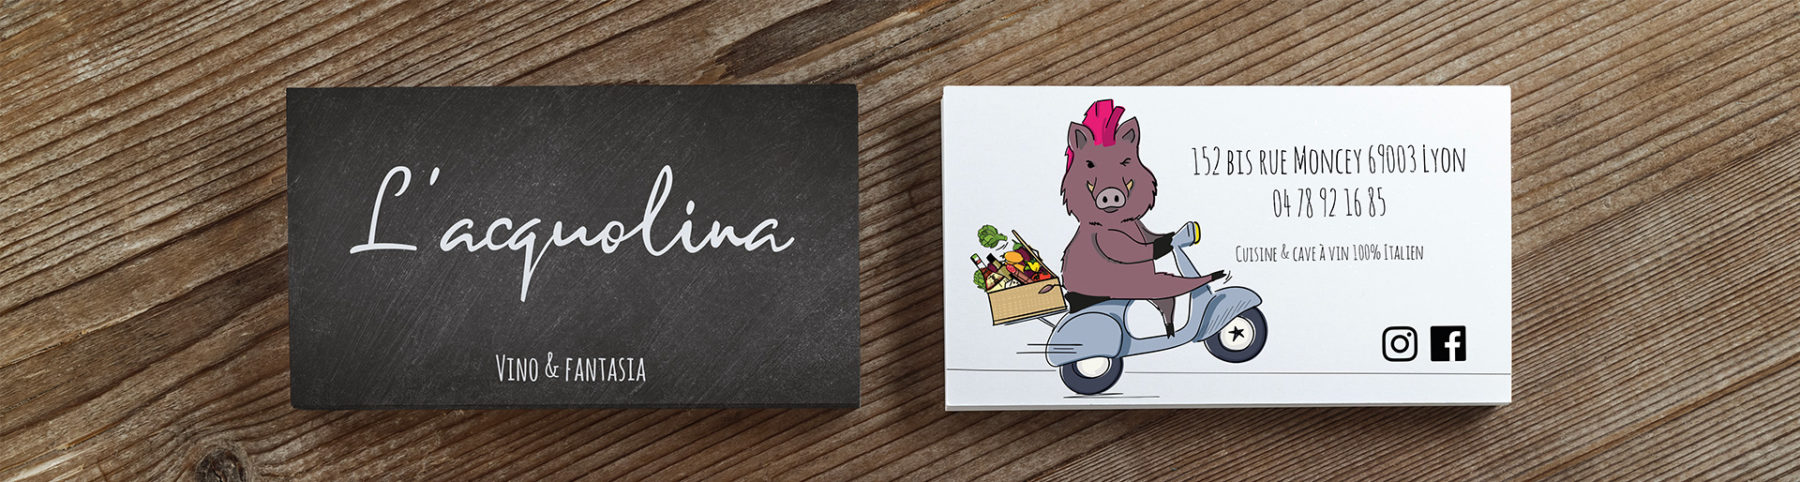 L'Acquolina's business card designed by MADMINT